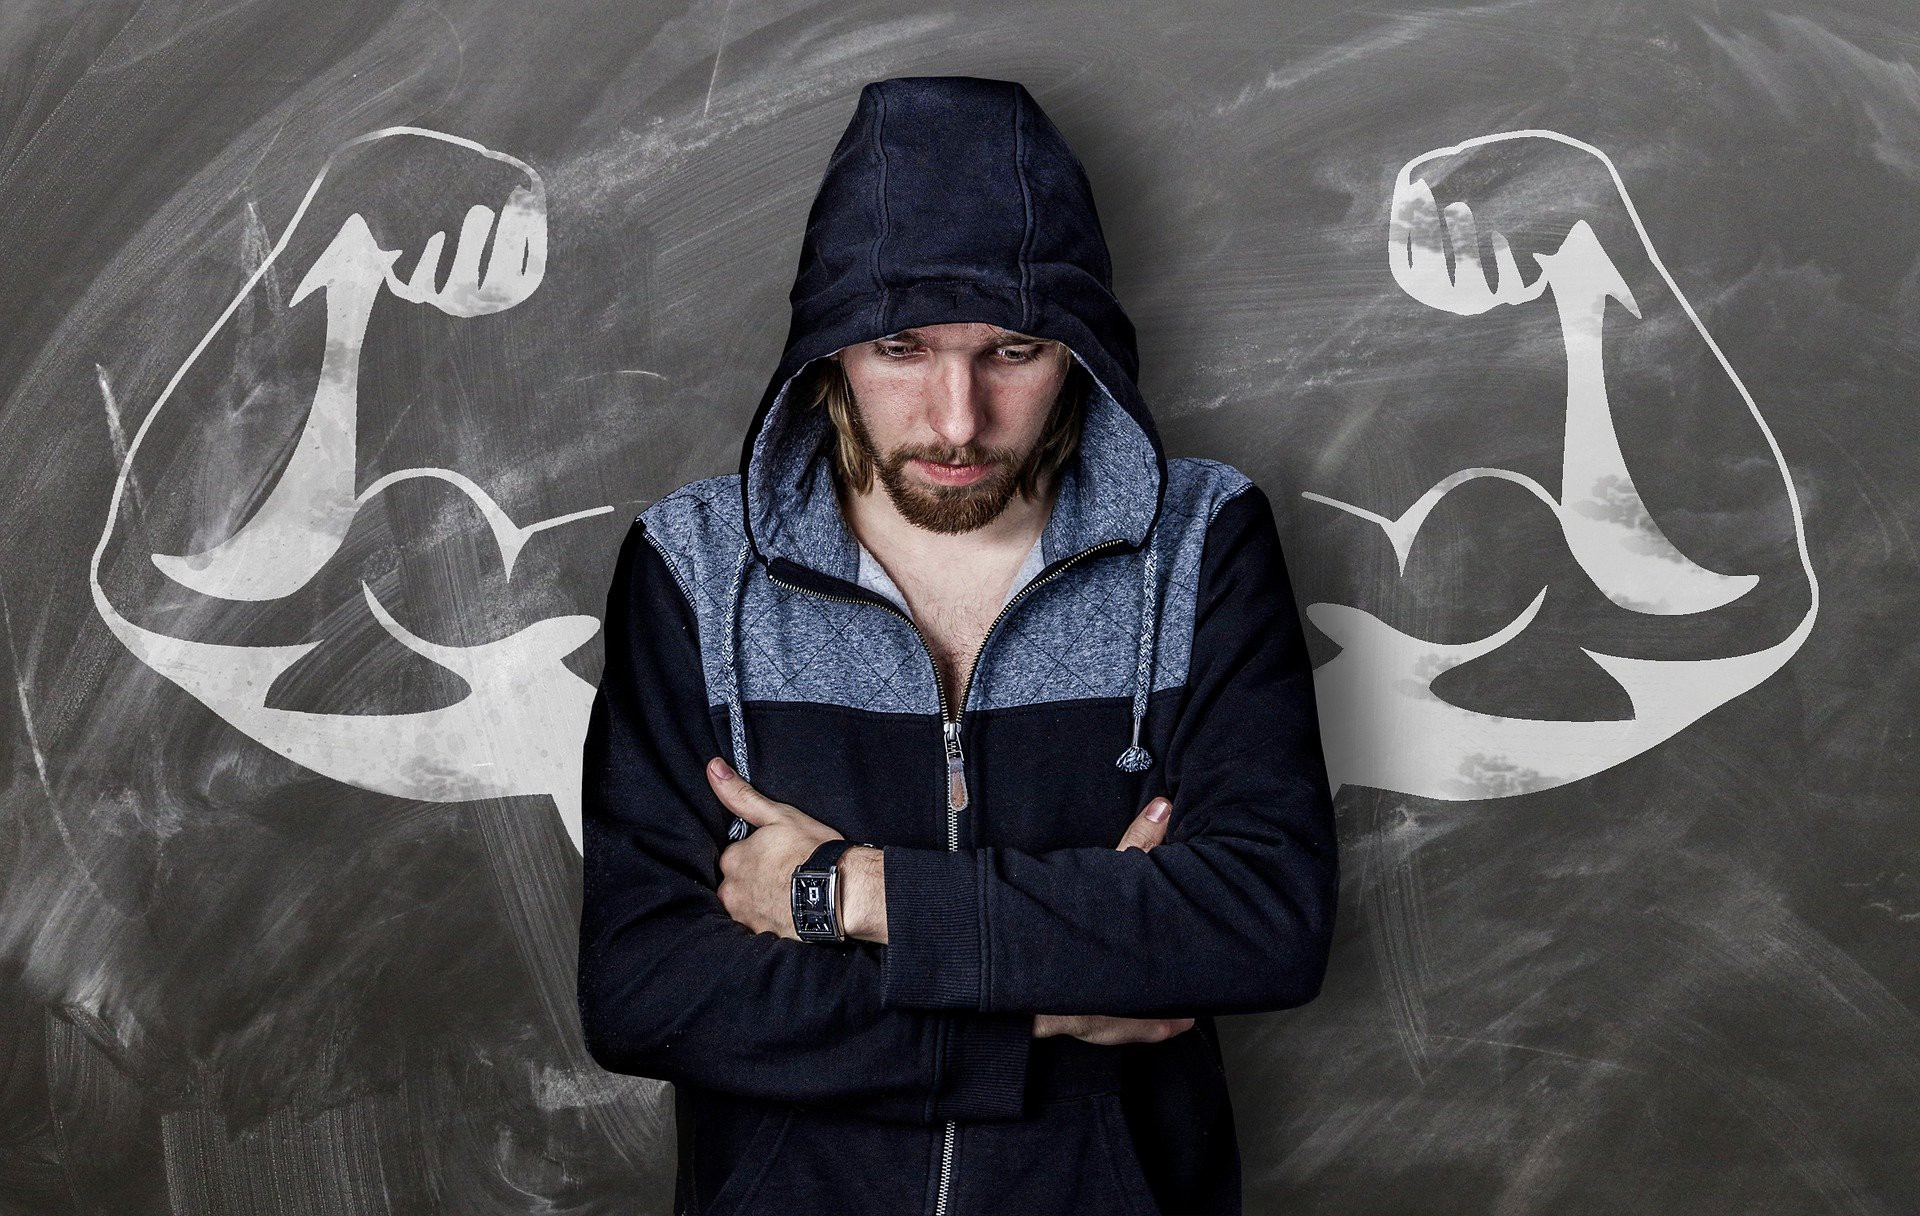 Man standing with arms crossed in front of a drawing of muscular arms flexing. It looks like his arms are the strong ones.